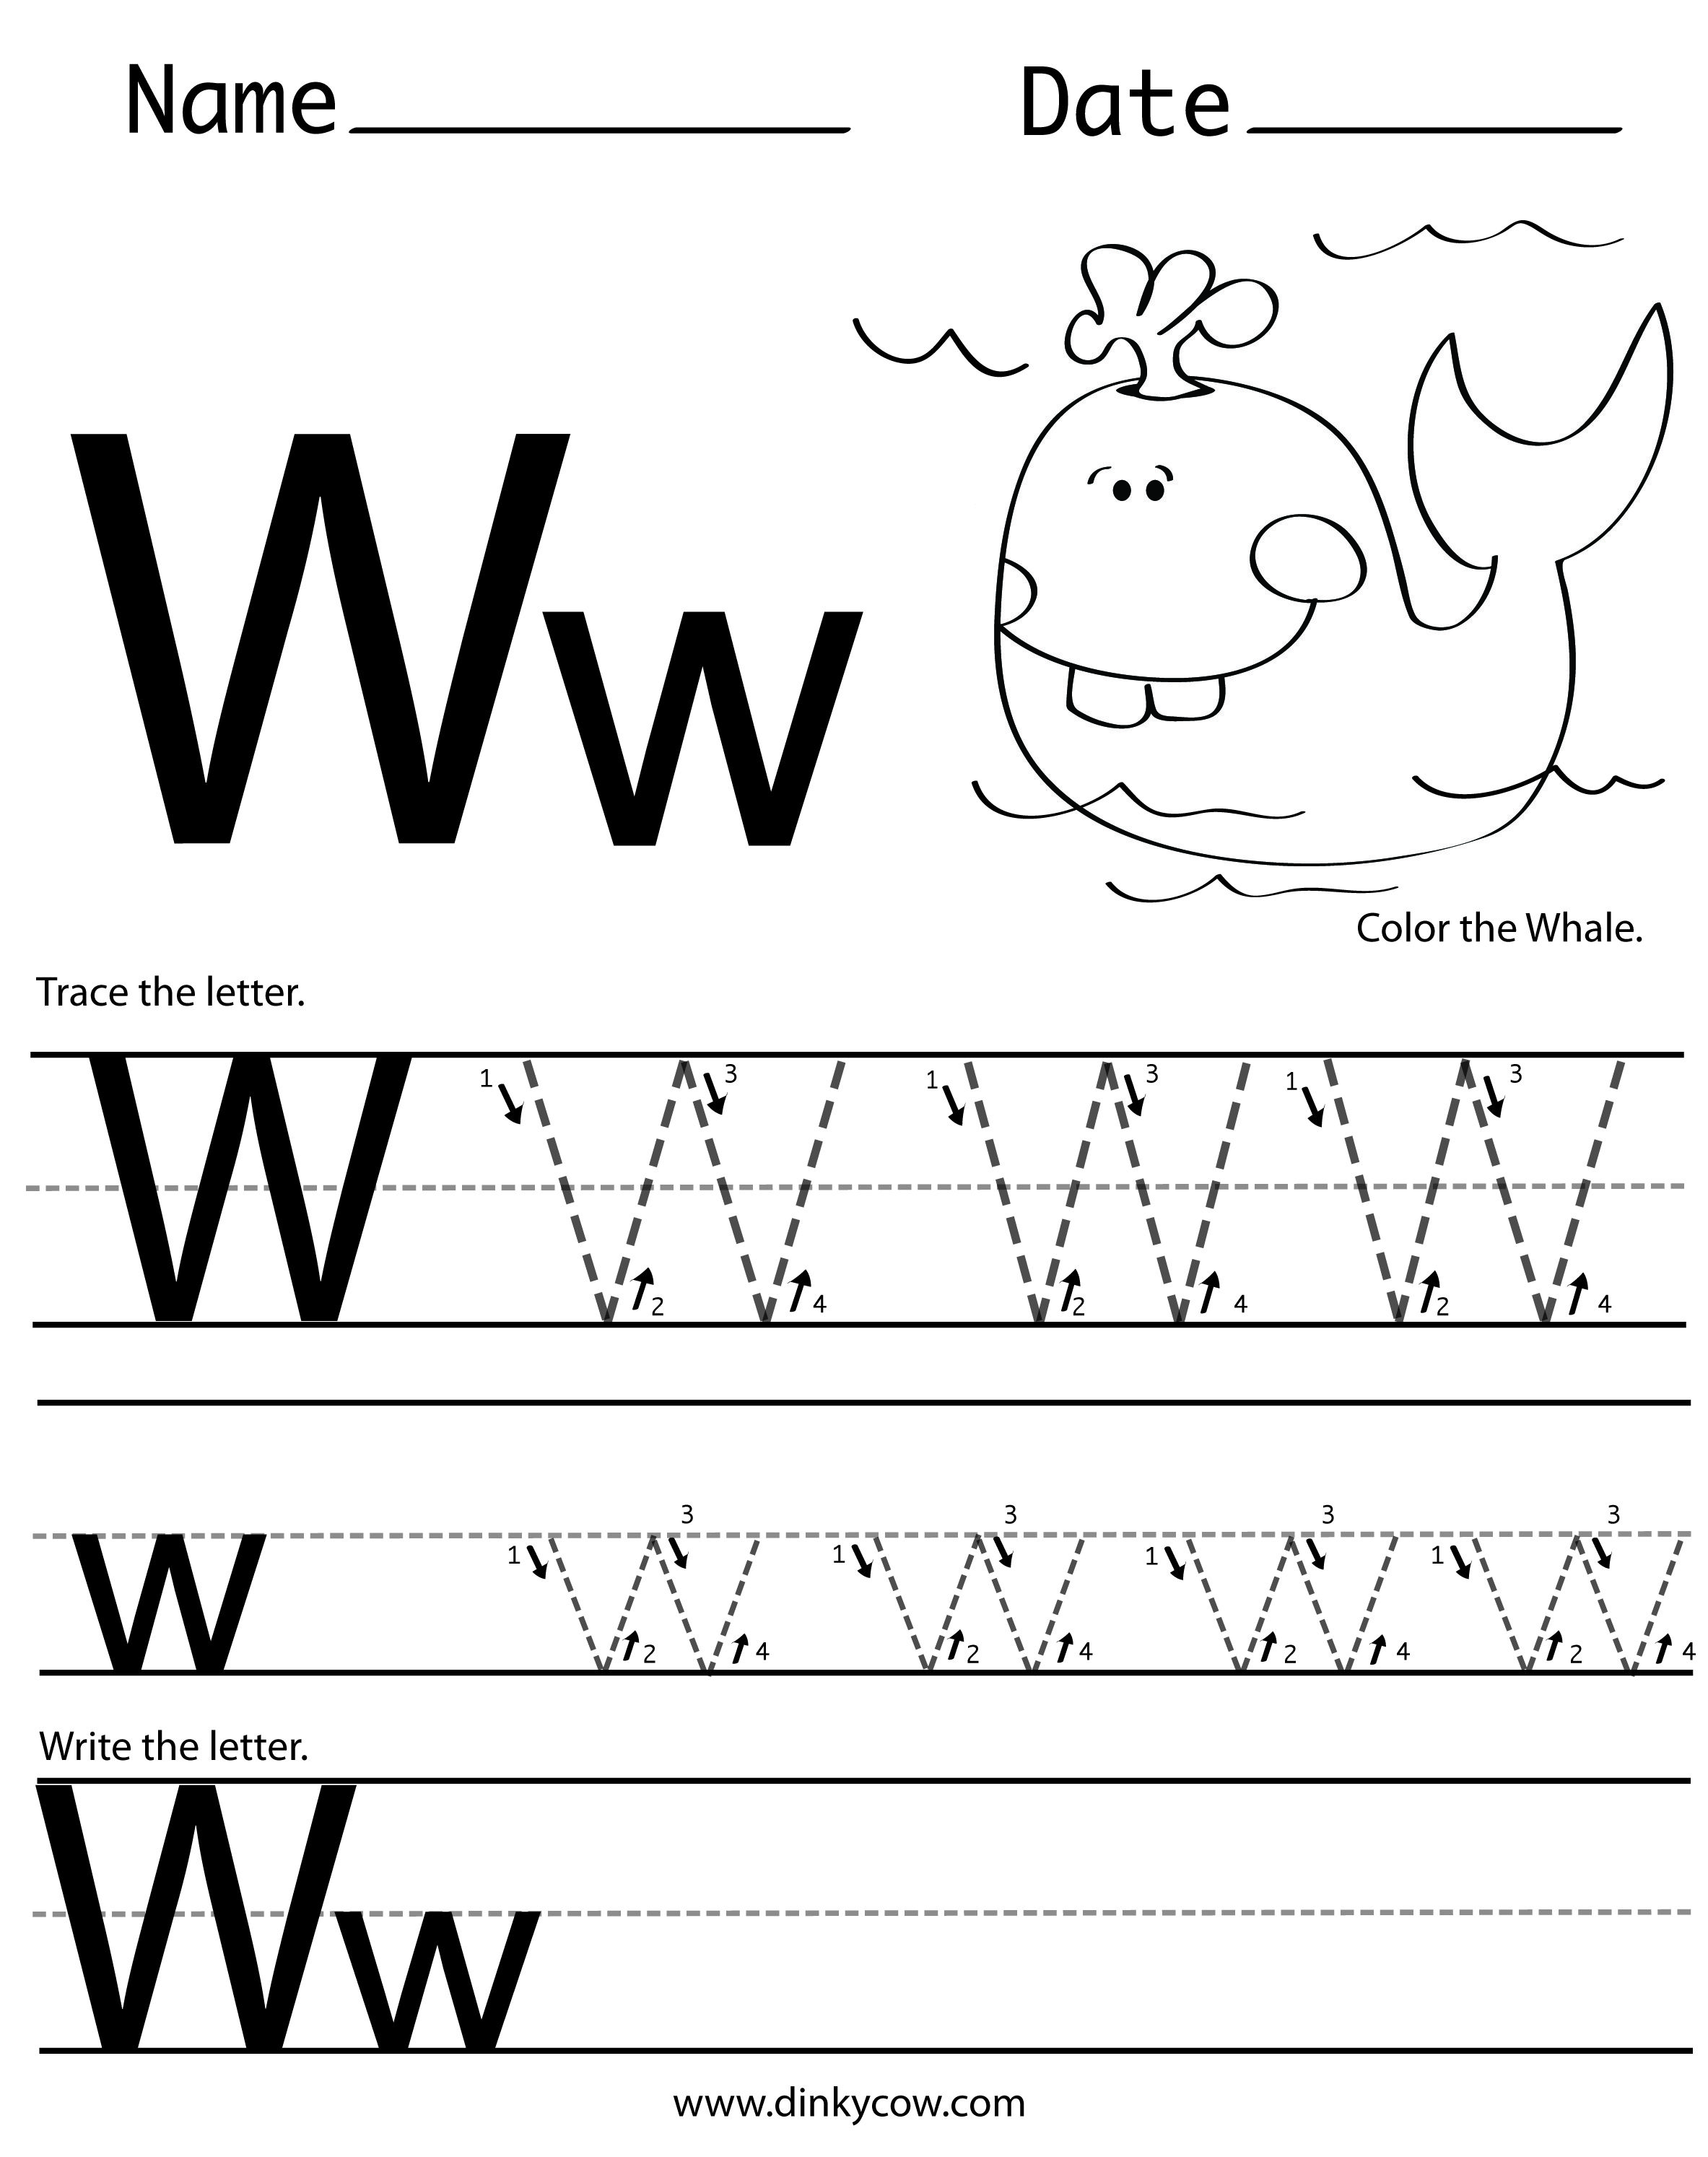 w-free-handwriting-worksheet-print.jpg 2,3662,988 pixels